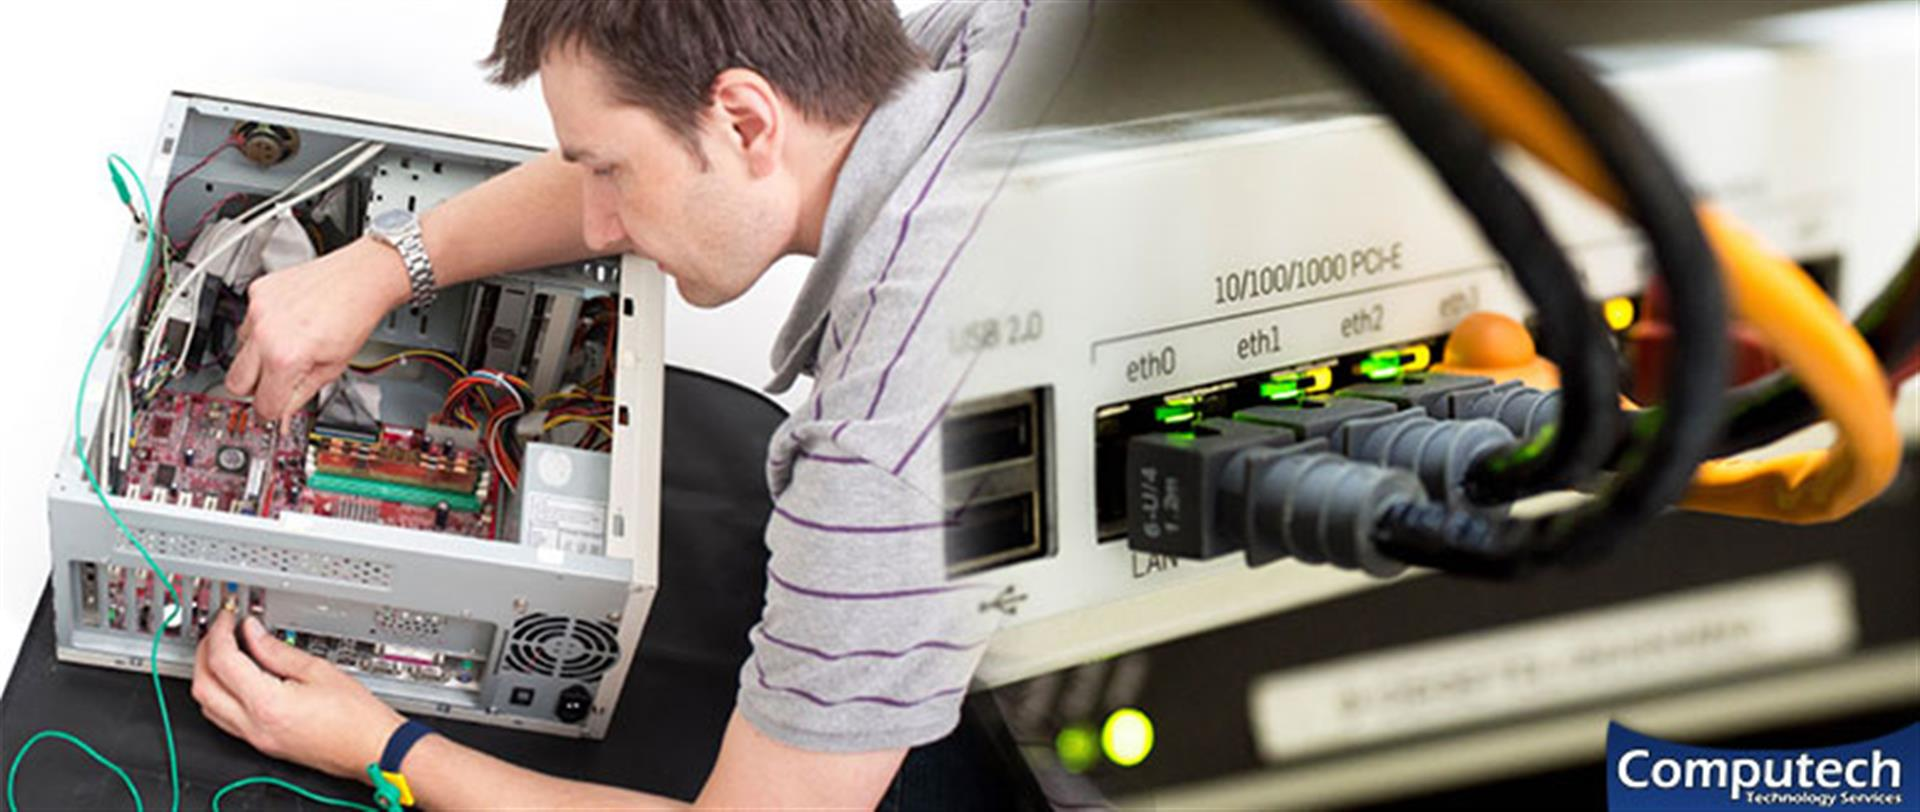 Moody Alabama On-Site Computer & Printer Repairs, Networking, Voice & Data Cabling Services